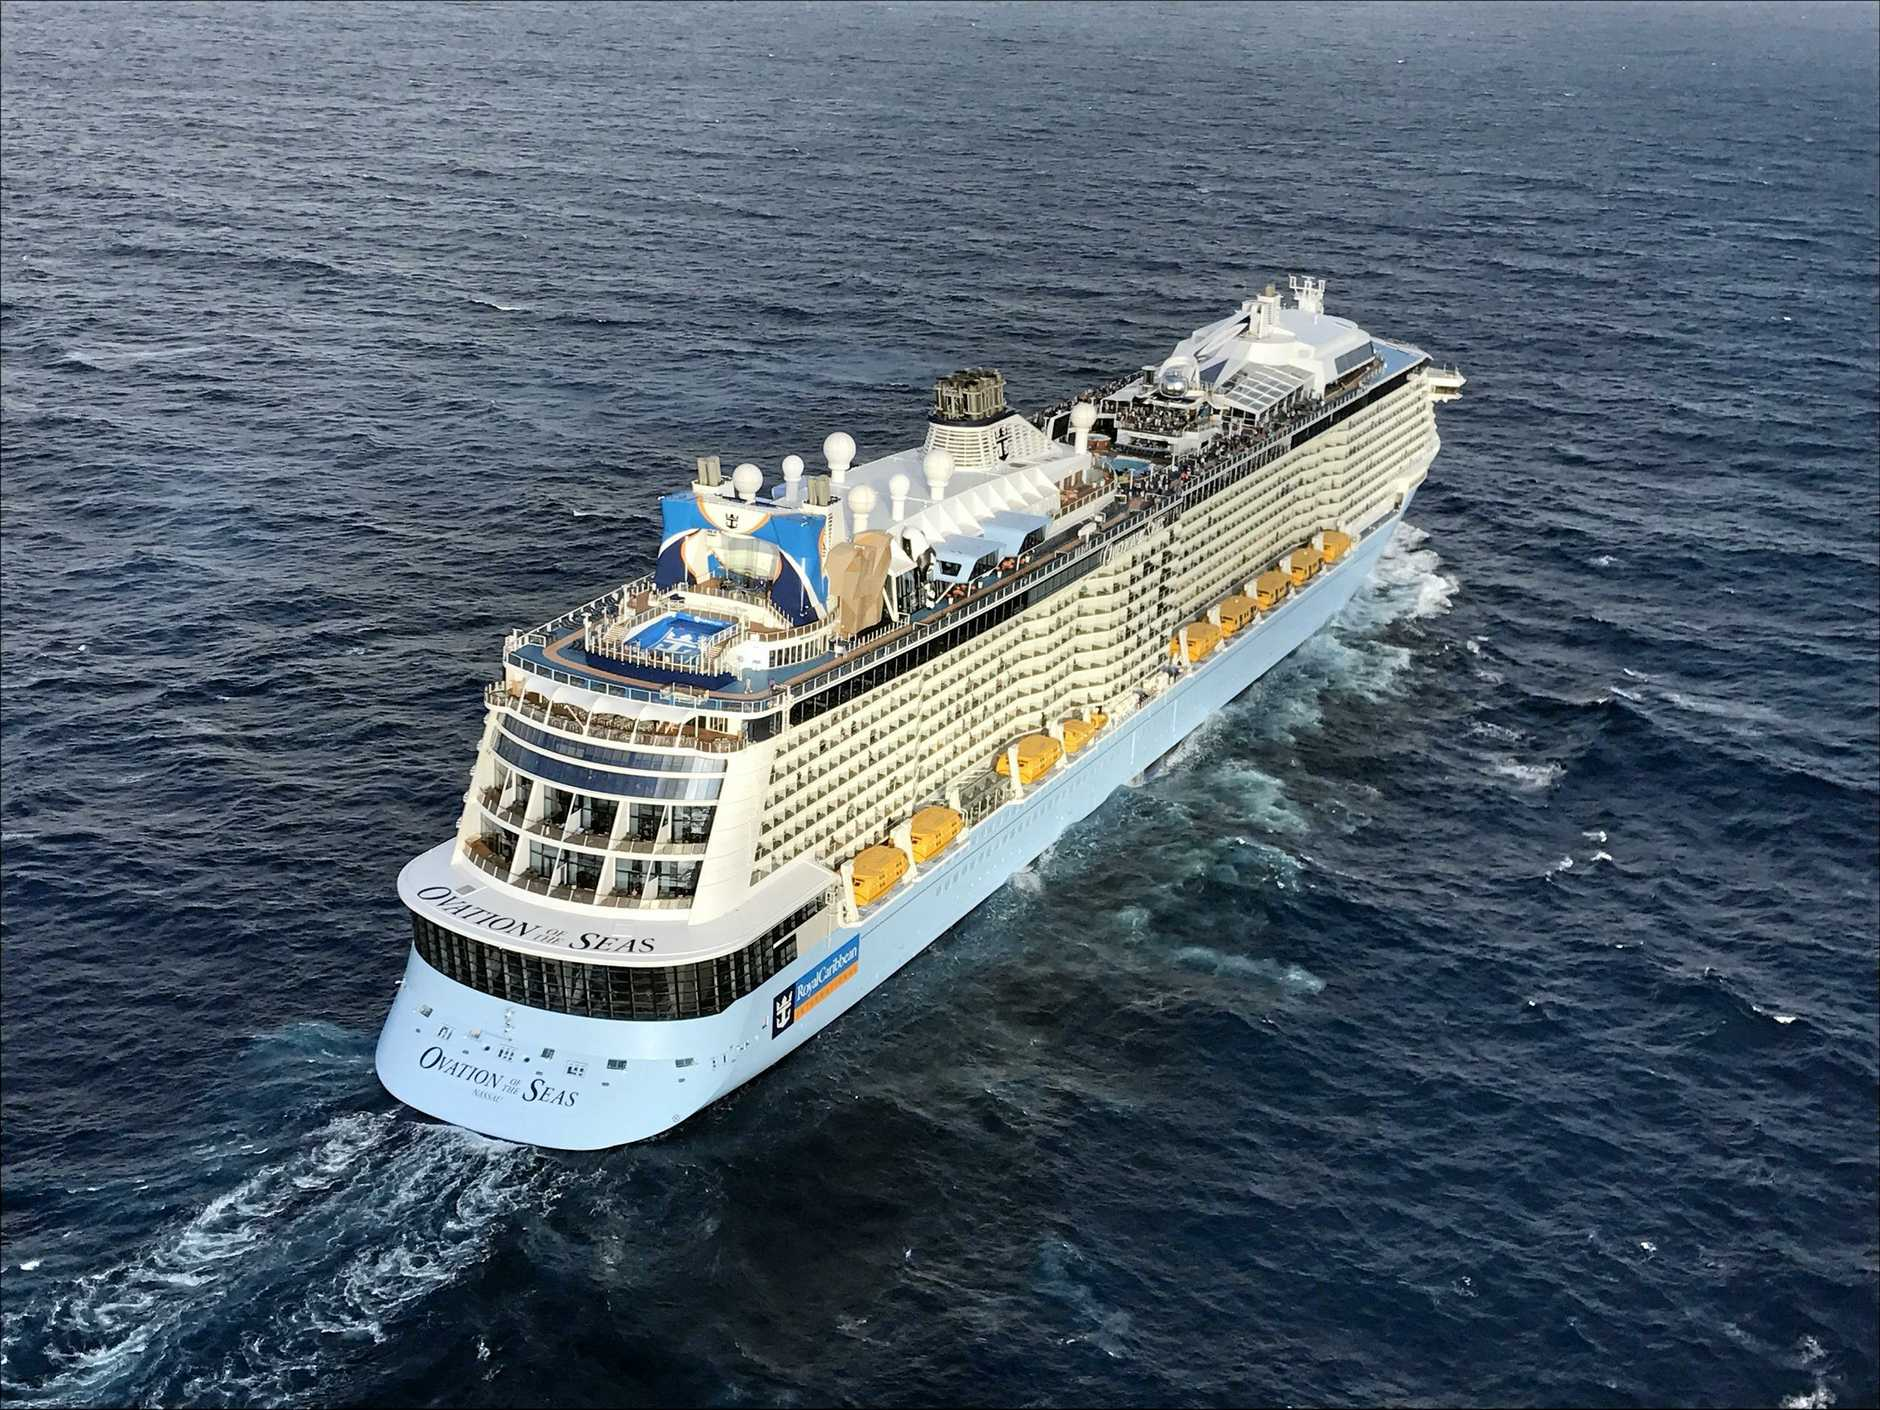 The Ovation of the Seas is the largest cruise ship ever to sail in Australian waters.